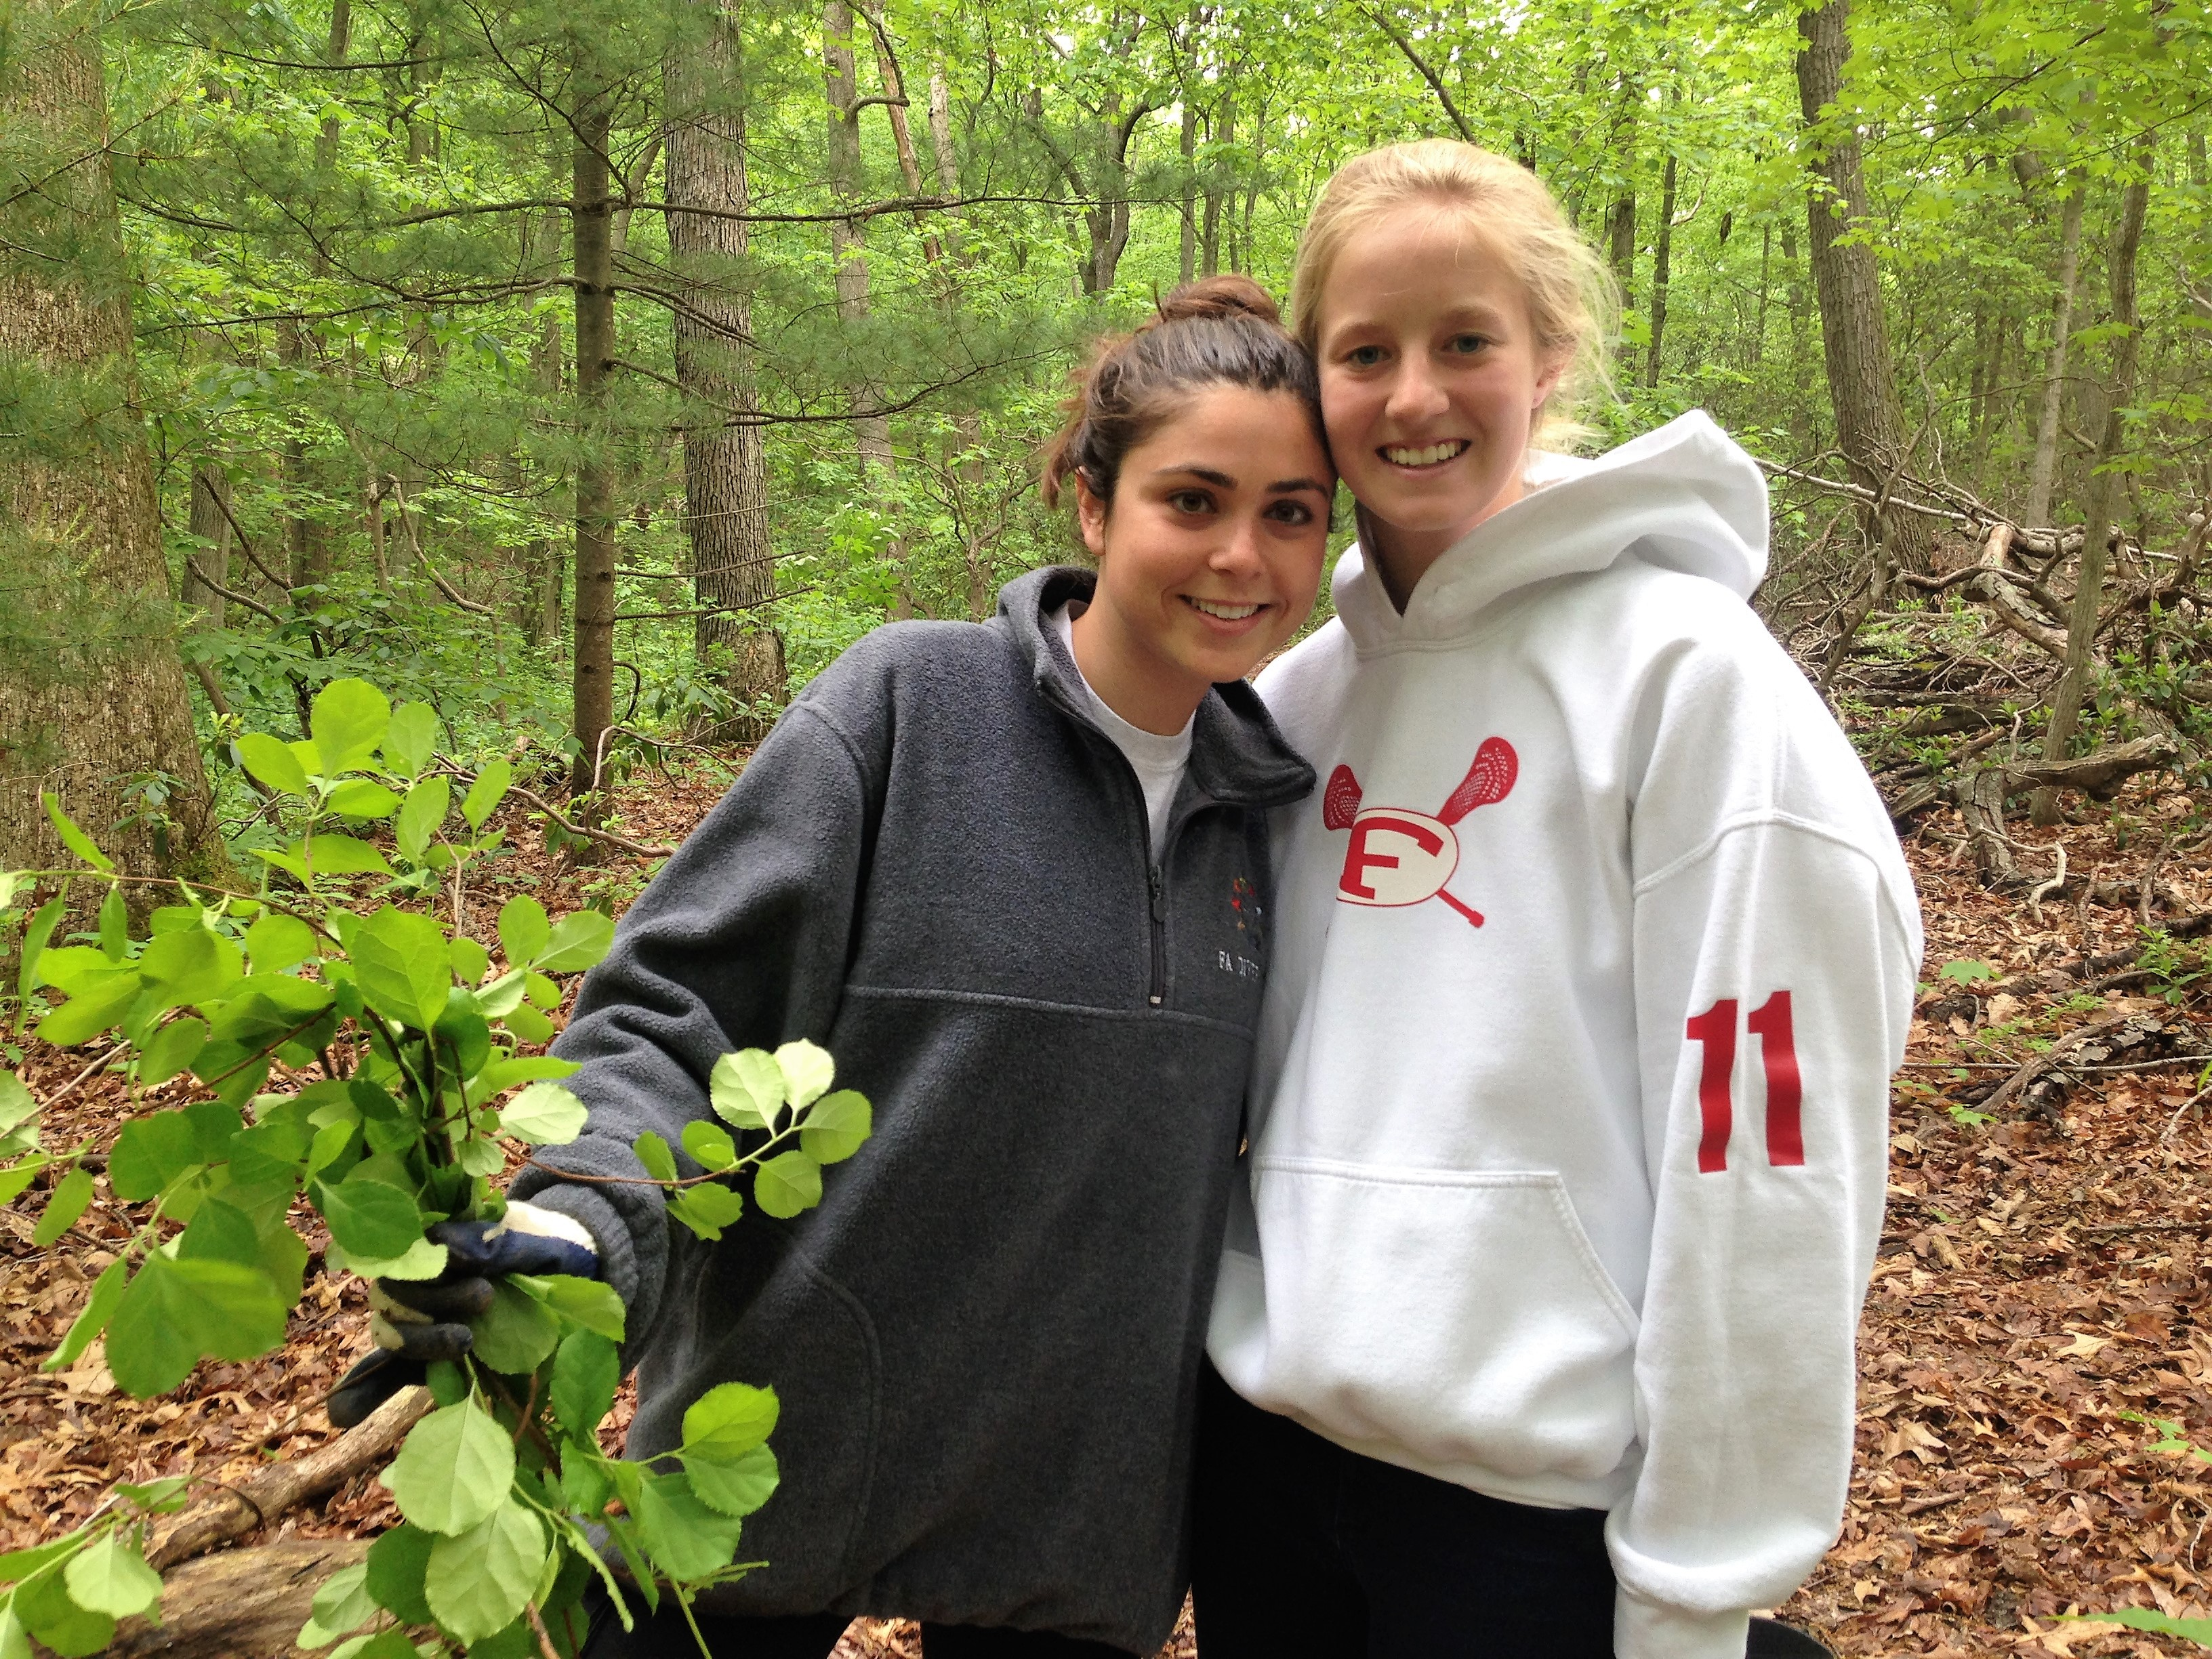 Friends Academy Students Completer their Senior Year Project with the Land Alliance